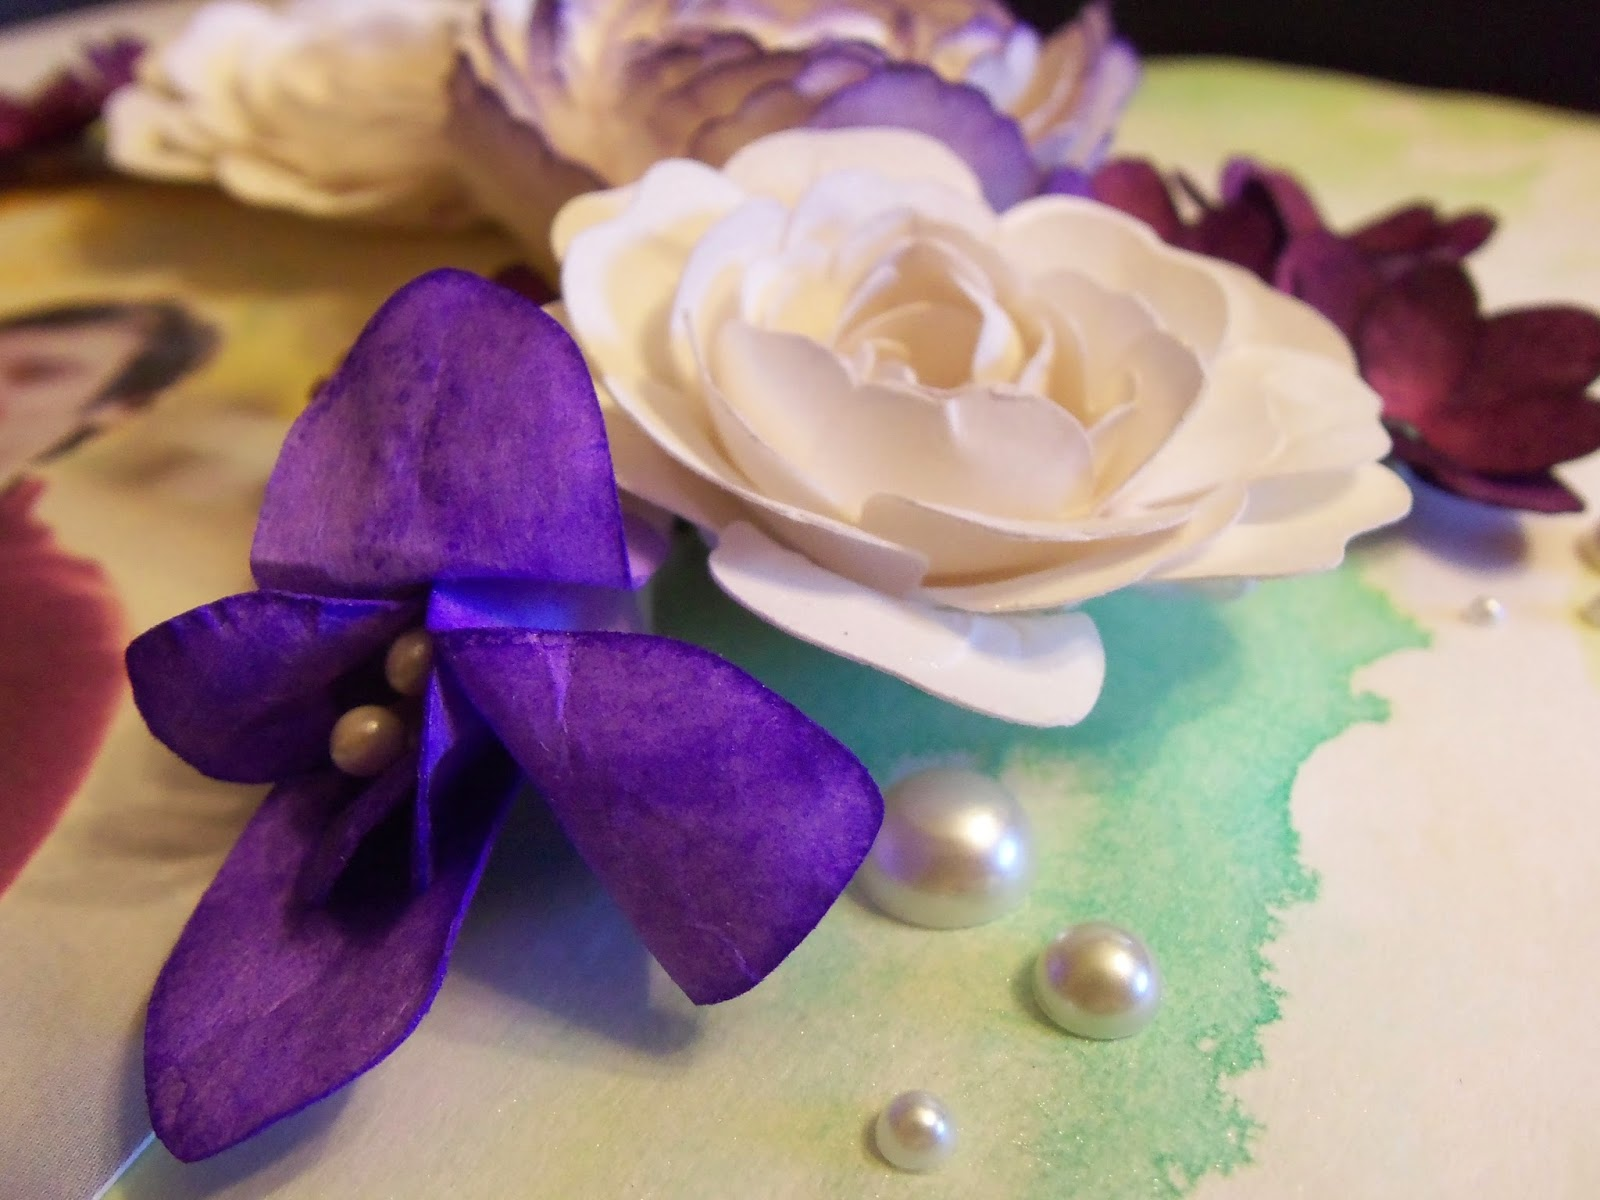 Bridal Shower Layout Gift by Alice Scraps Wonderland   Handmade flowers really add to the personalization of this scrapbook layout. The purple freesia adds a bright pop and the white roses give it class.